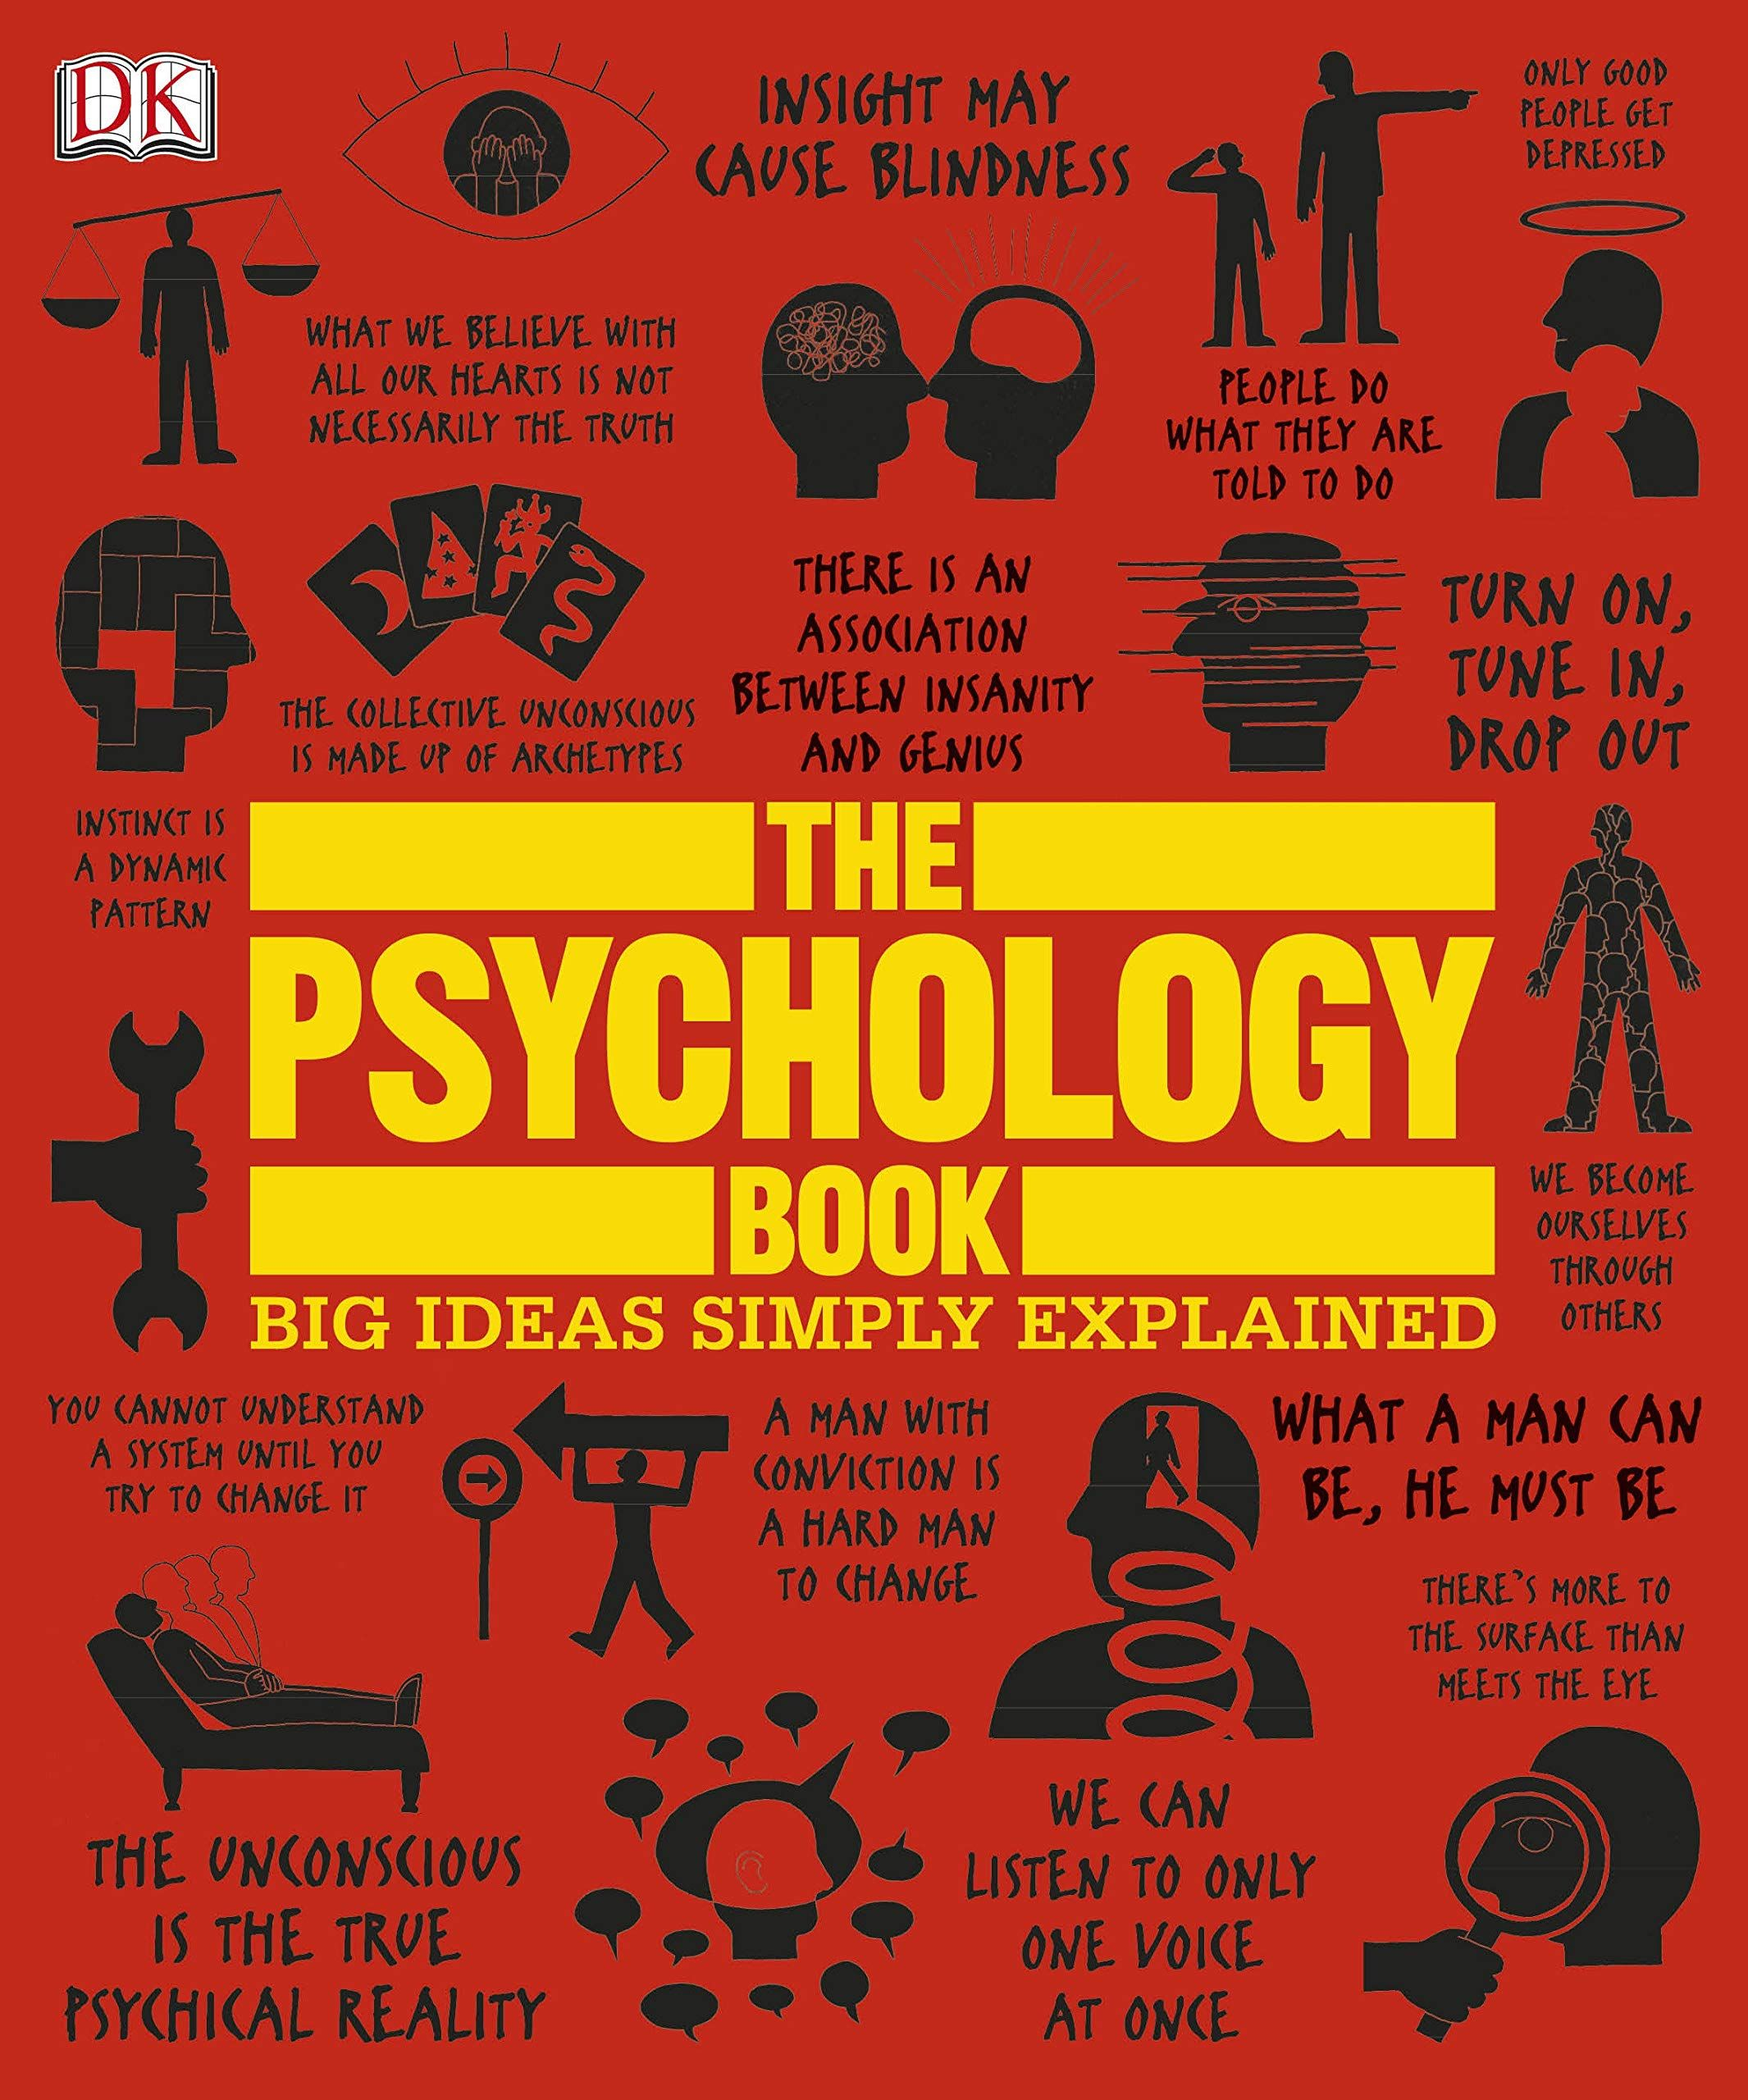 The Psychology Book Big Ideas Simply Explained In 2021 Psychology Books Books Psychology